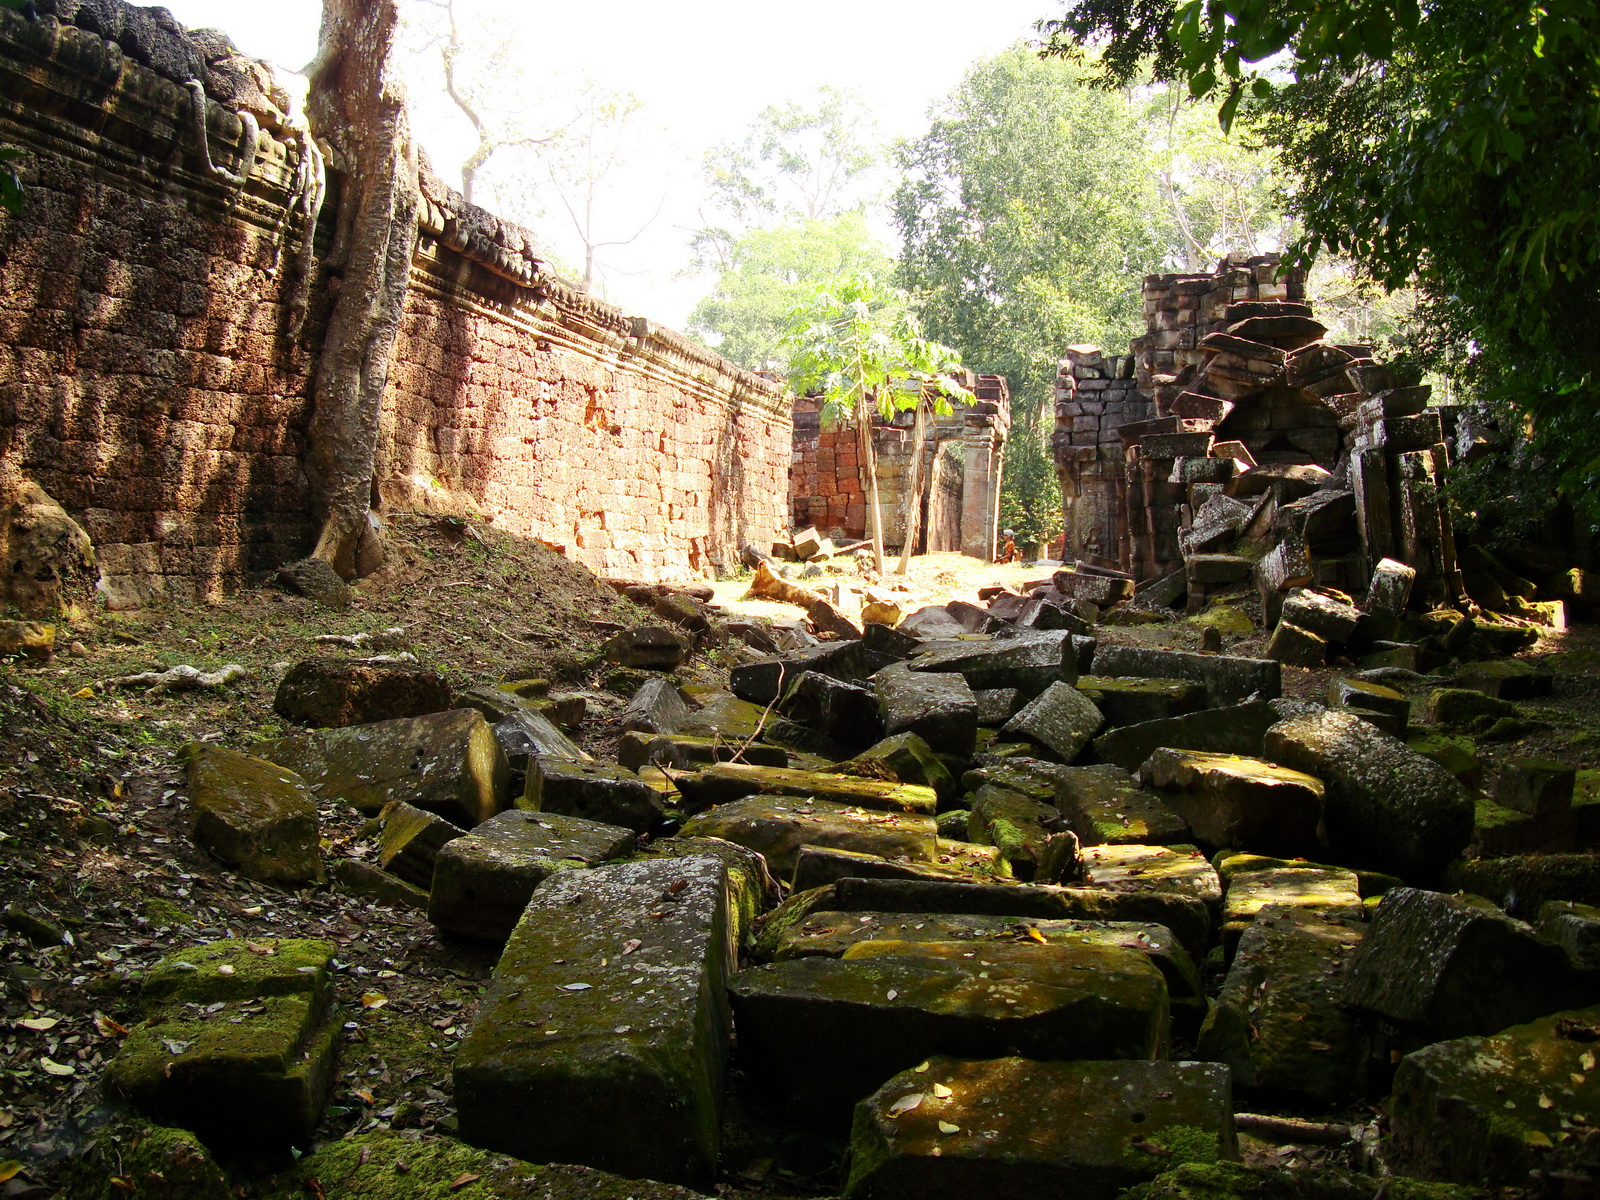 Preah Khan Temple laterite walls overtaken by giant strangler fig trees 05